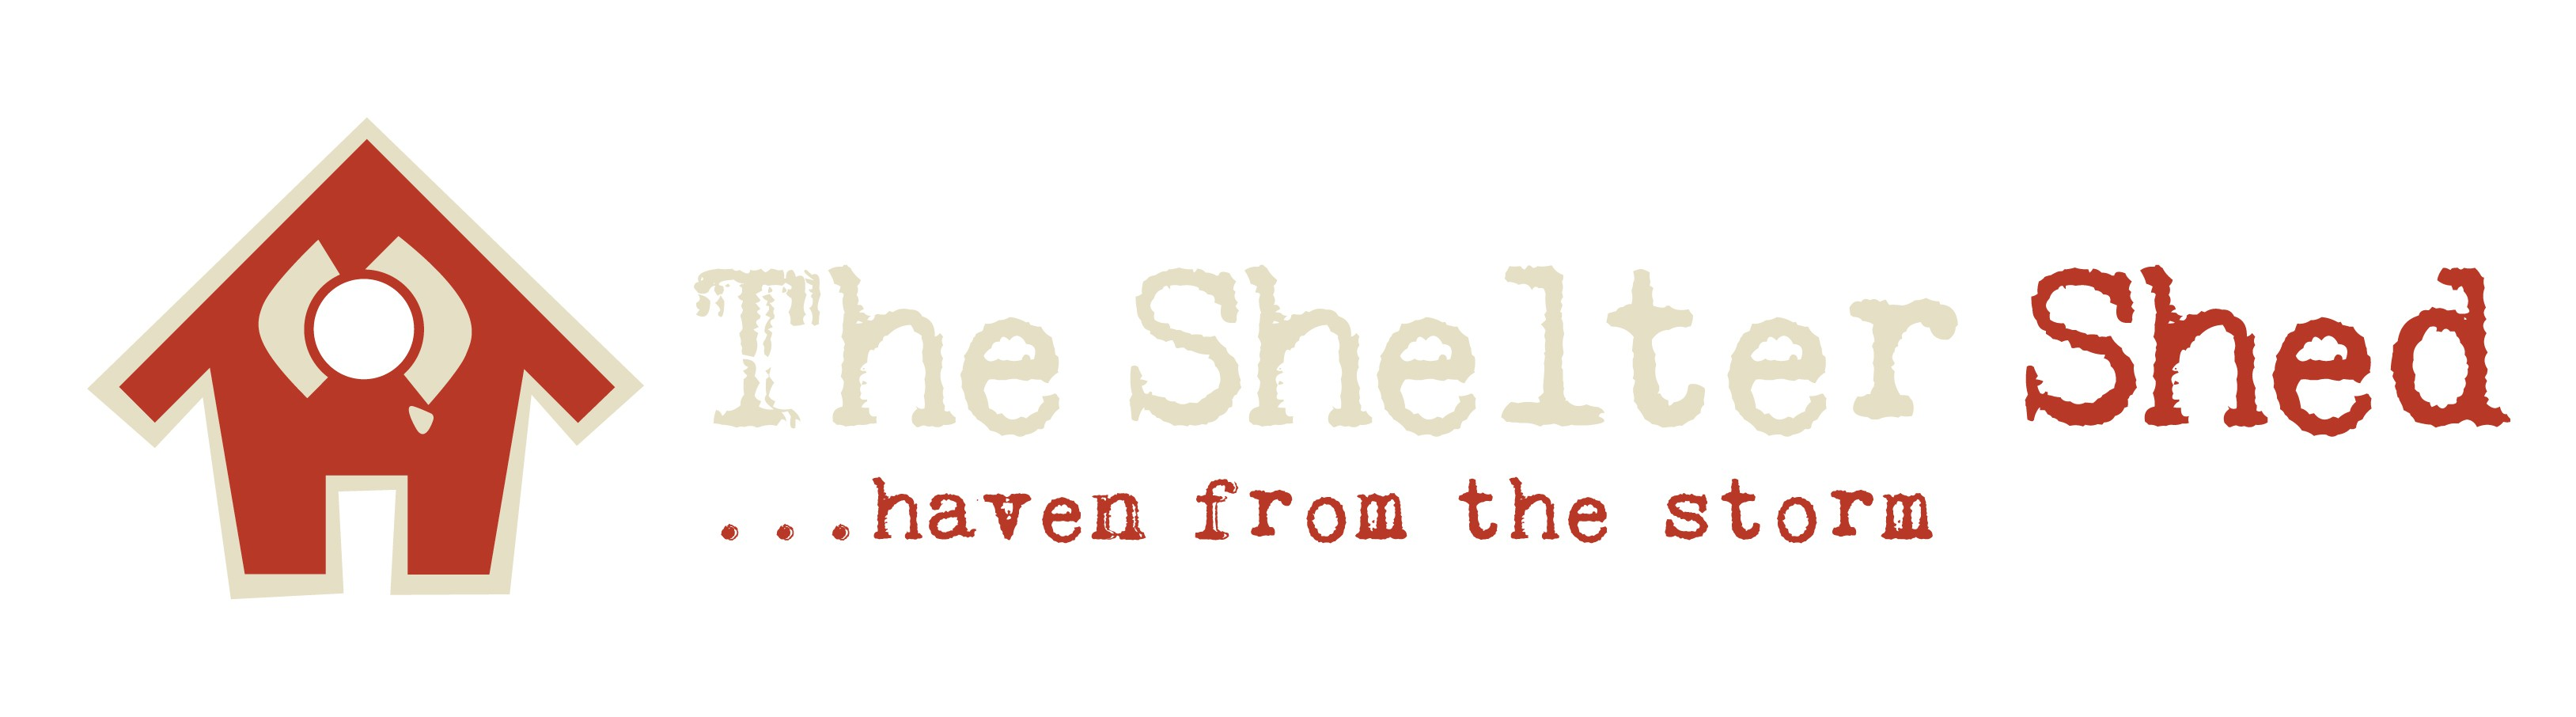 The Shelter Shed logo modification and letterhead